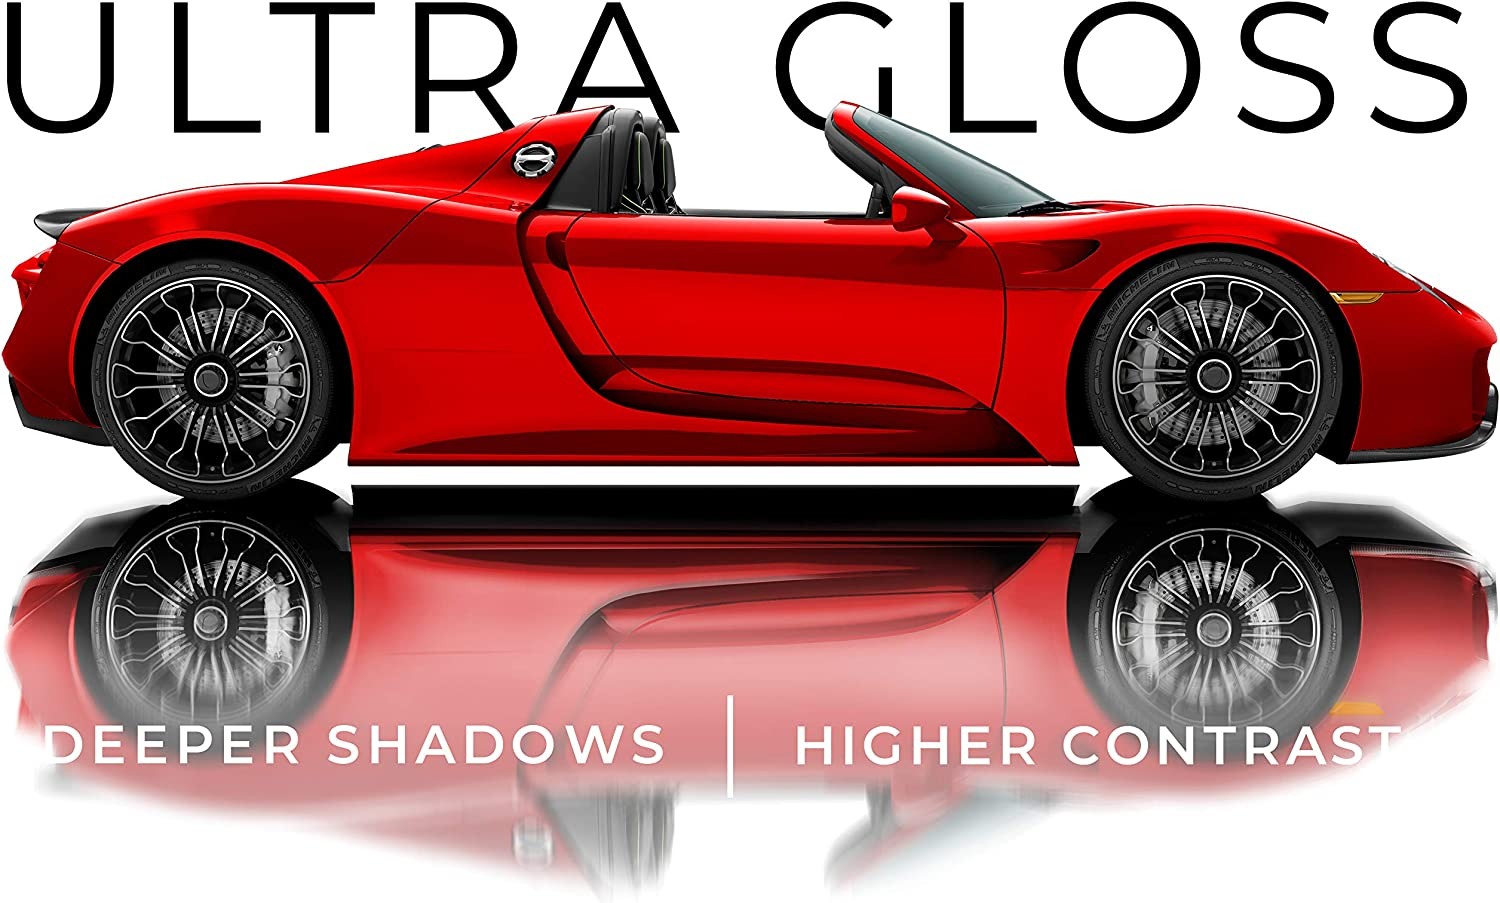 Stretchable Protective Cap Liner 3ft x 5ft VViViD+ Ultra Gloss Candy Red Vinyl Car Wrap Premium Paint Replacement Film Roll with Nano Air Release Technology Indoor Outdoor Self Adhesive